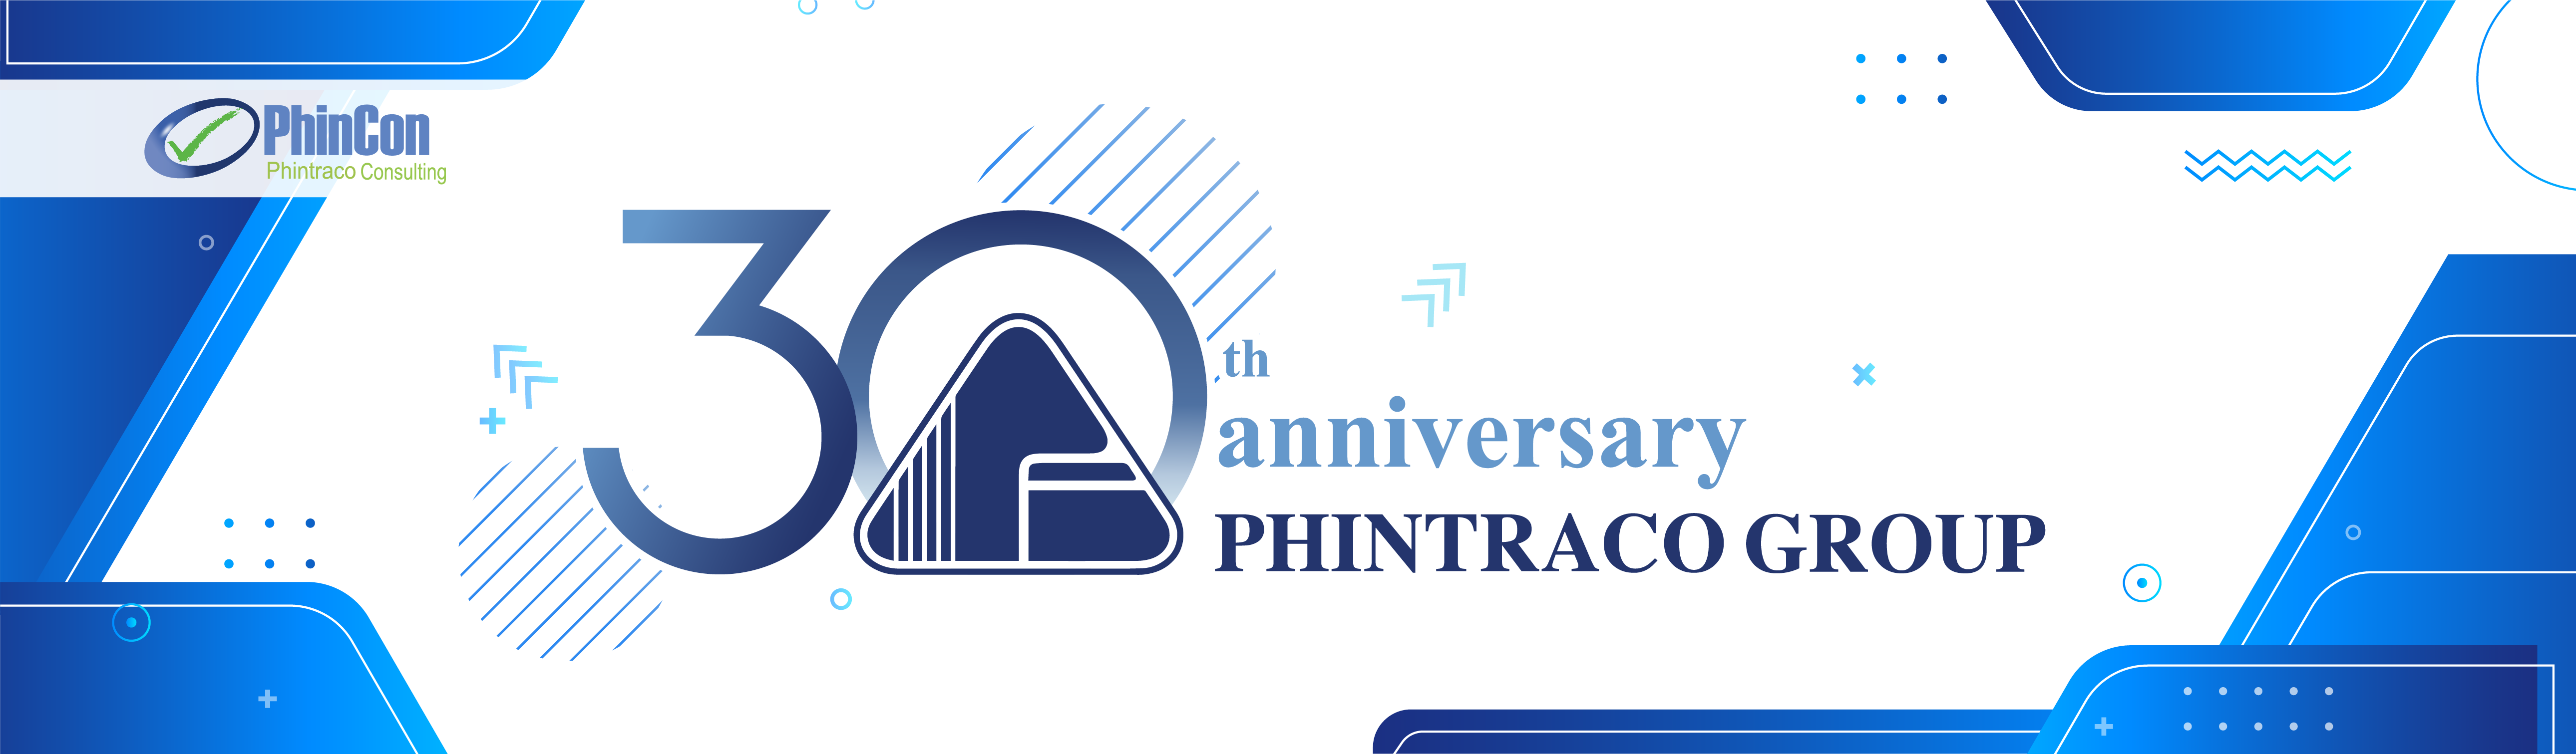 Phintraco 30th Anniversary - PhinCon